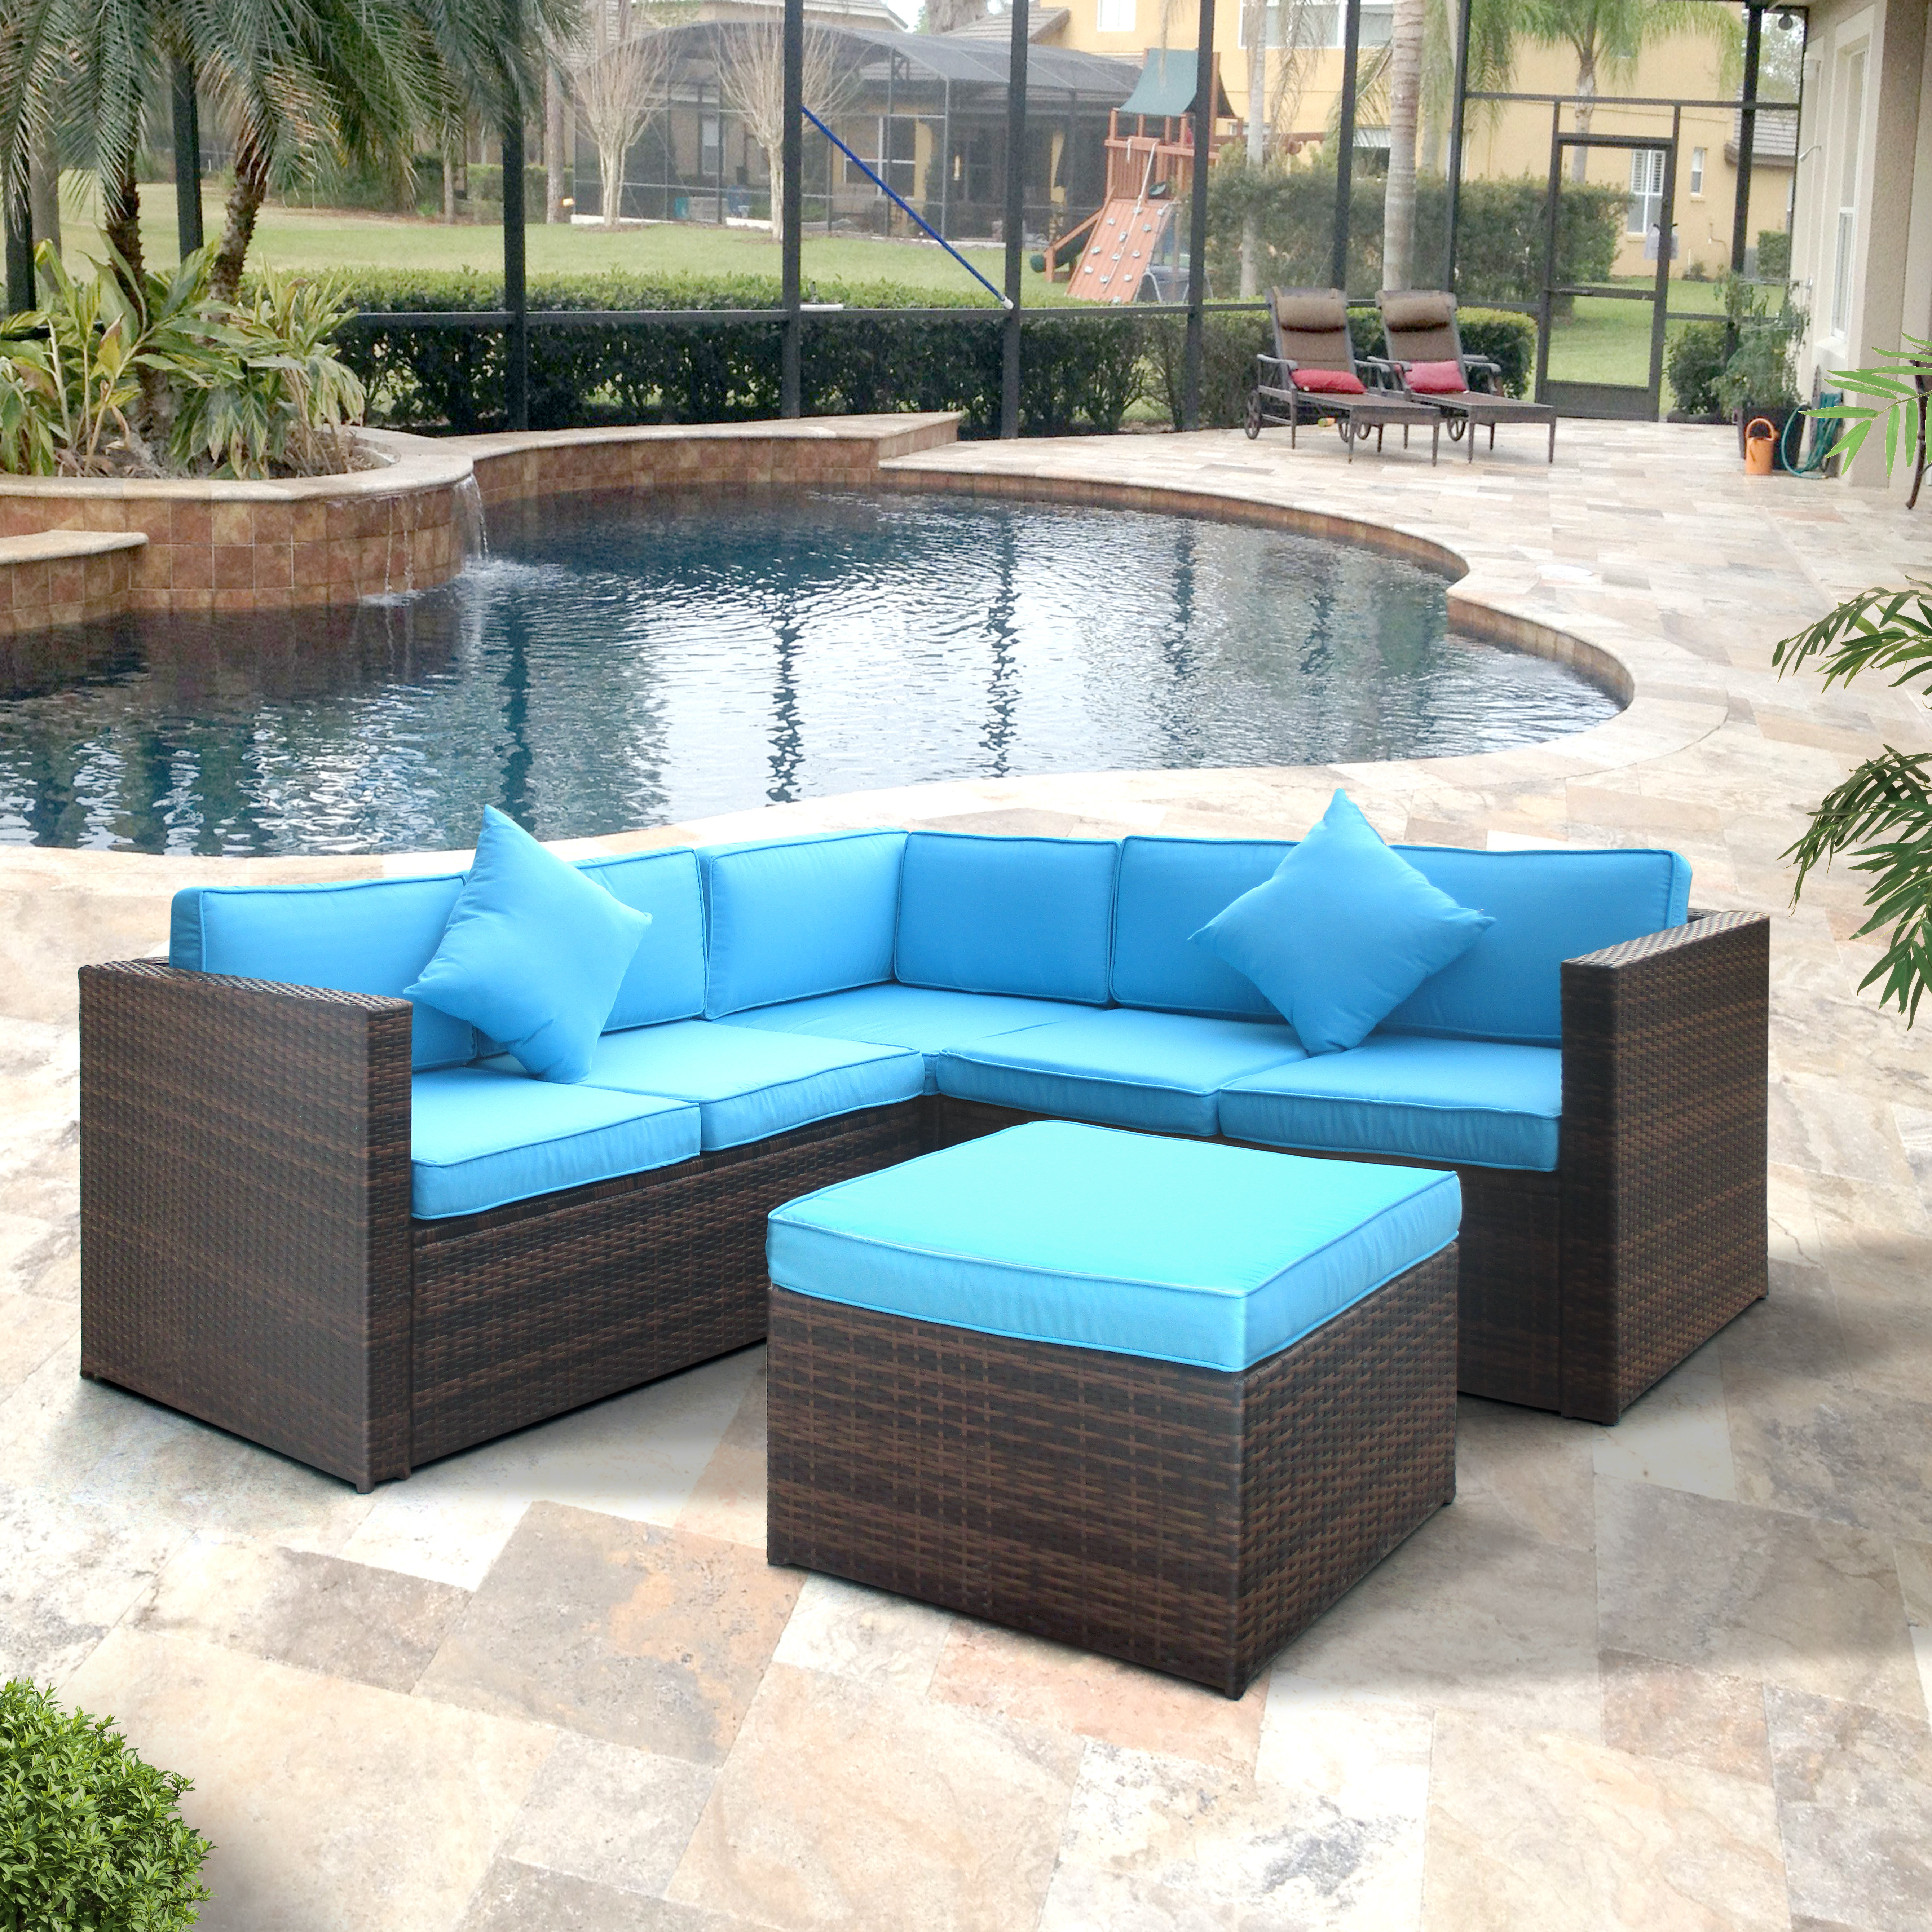 Rowley Patio Sofas Set With Cushions Regarding Most Recent Lilith Patio Sectional With Cushions (View 11 of 20)